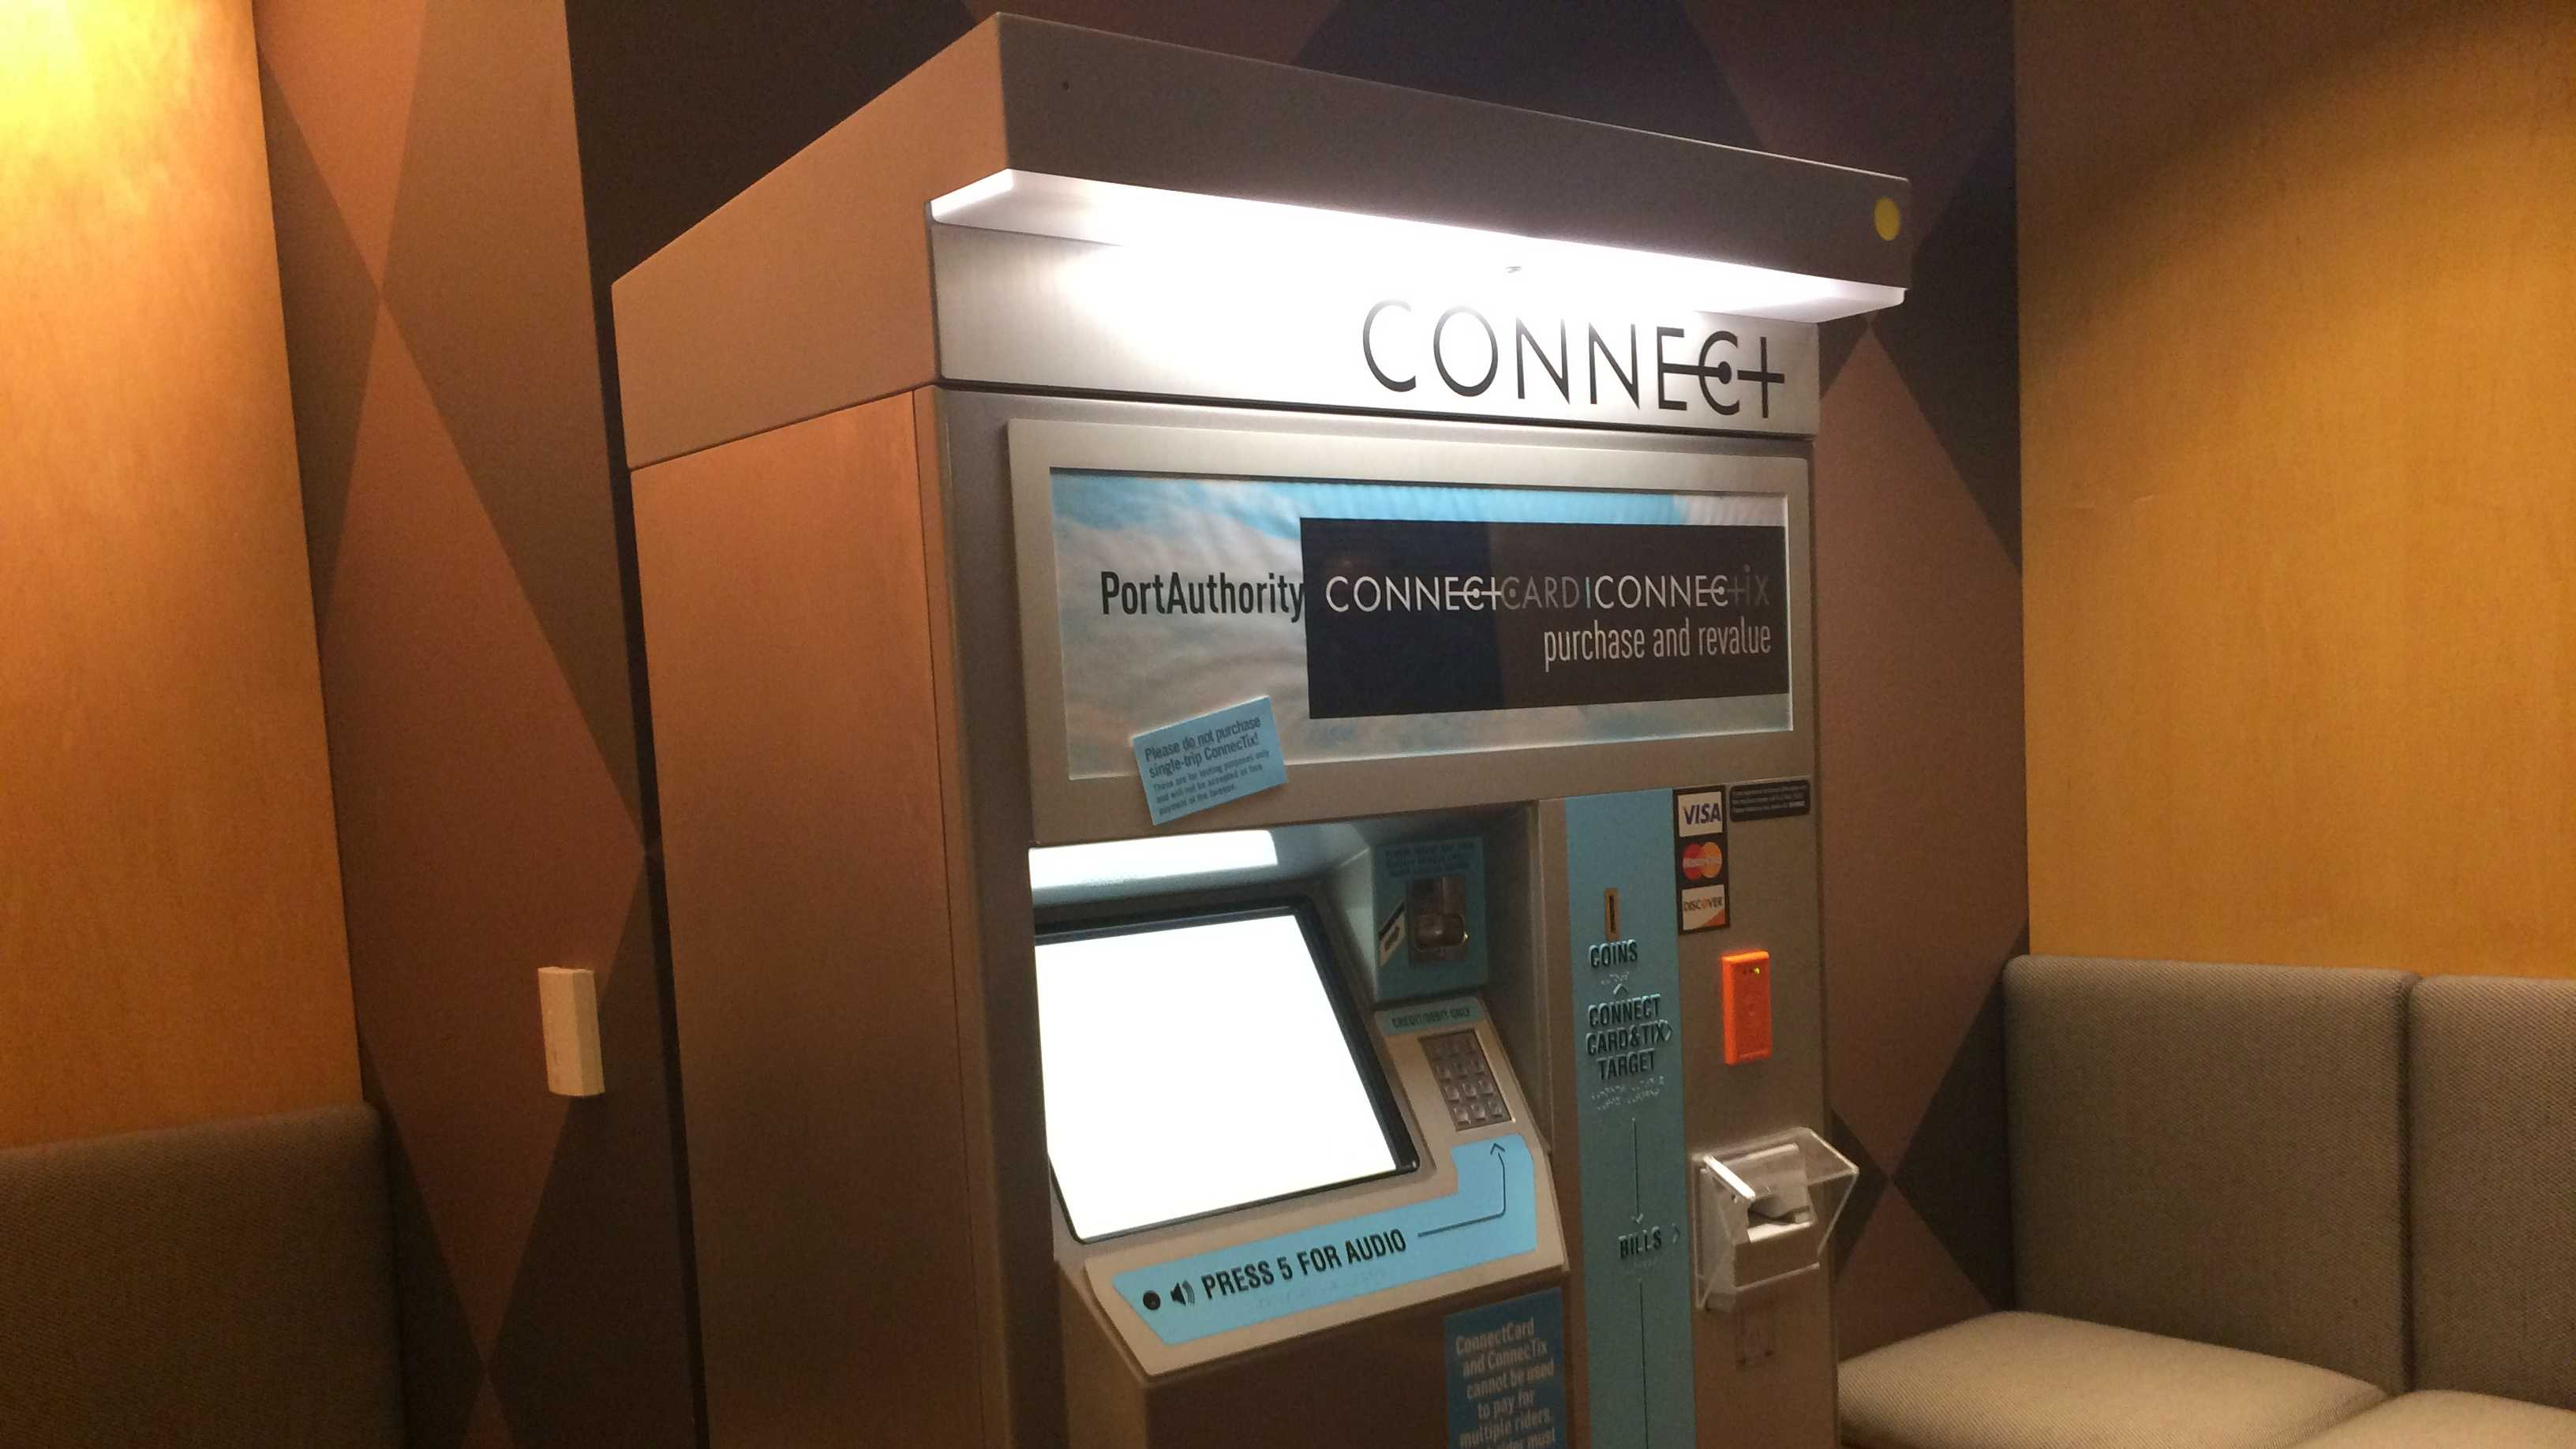 A ConnectCard can be loaded with Port Authority fare value at the machines in the downtown service center and at various T and busway stations.